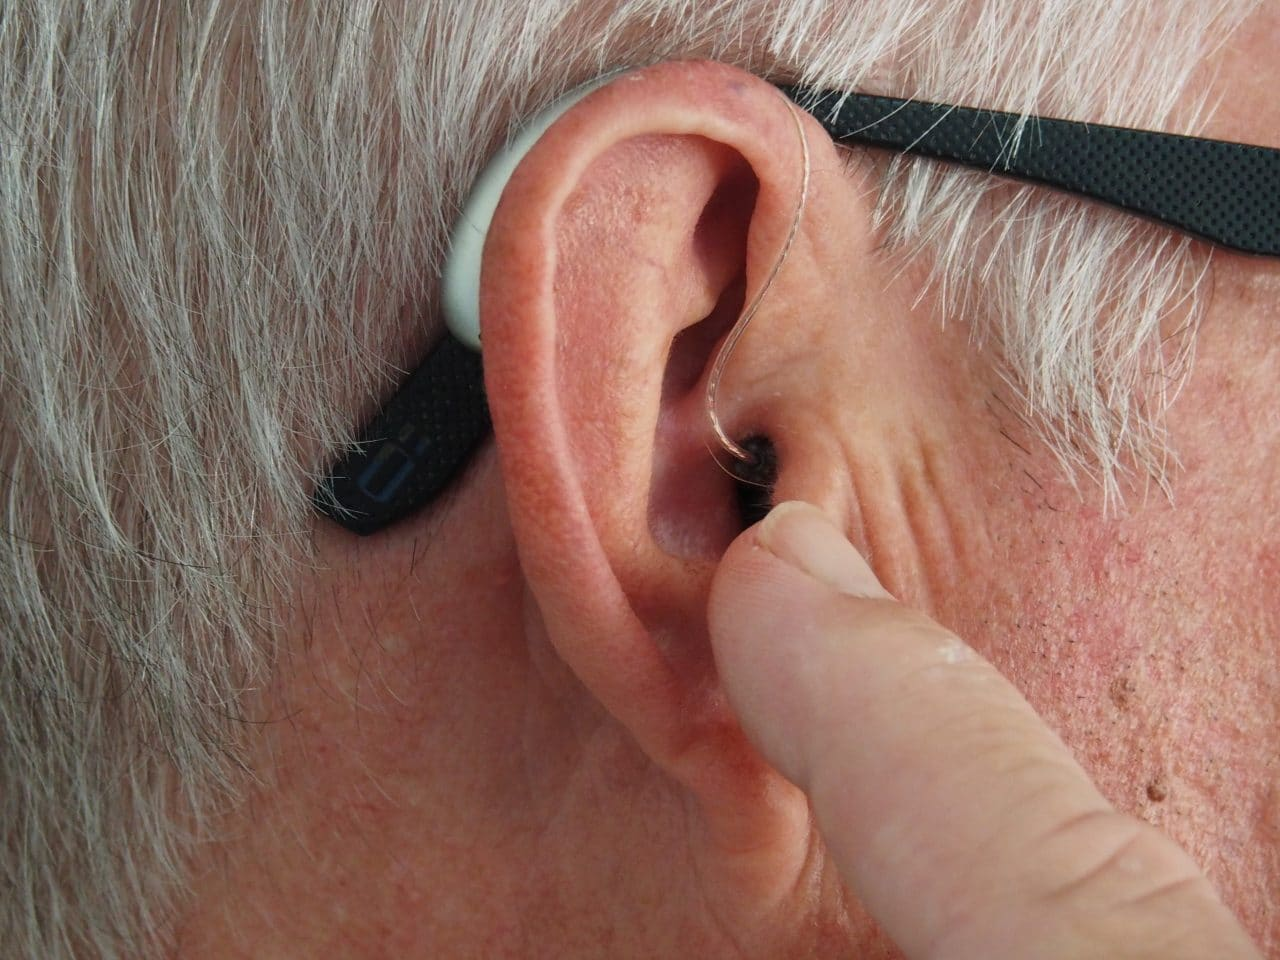 Man points at hearing aid on ear